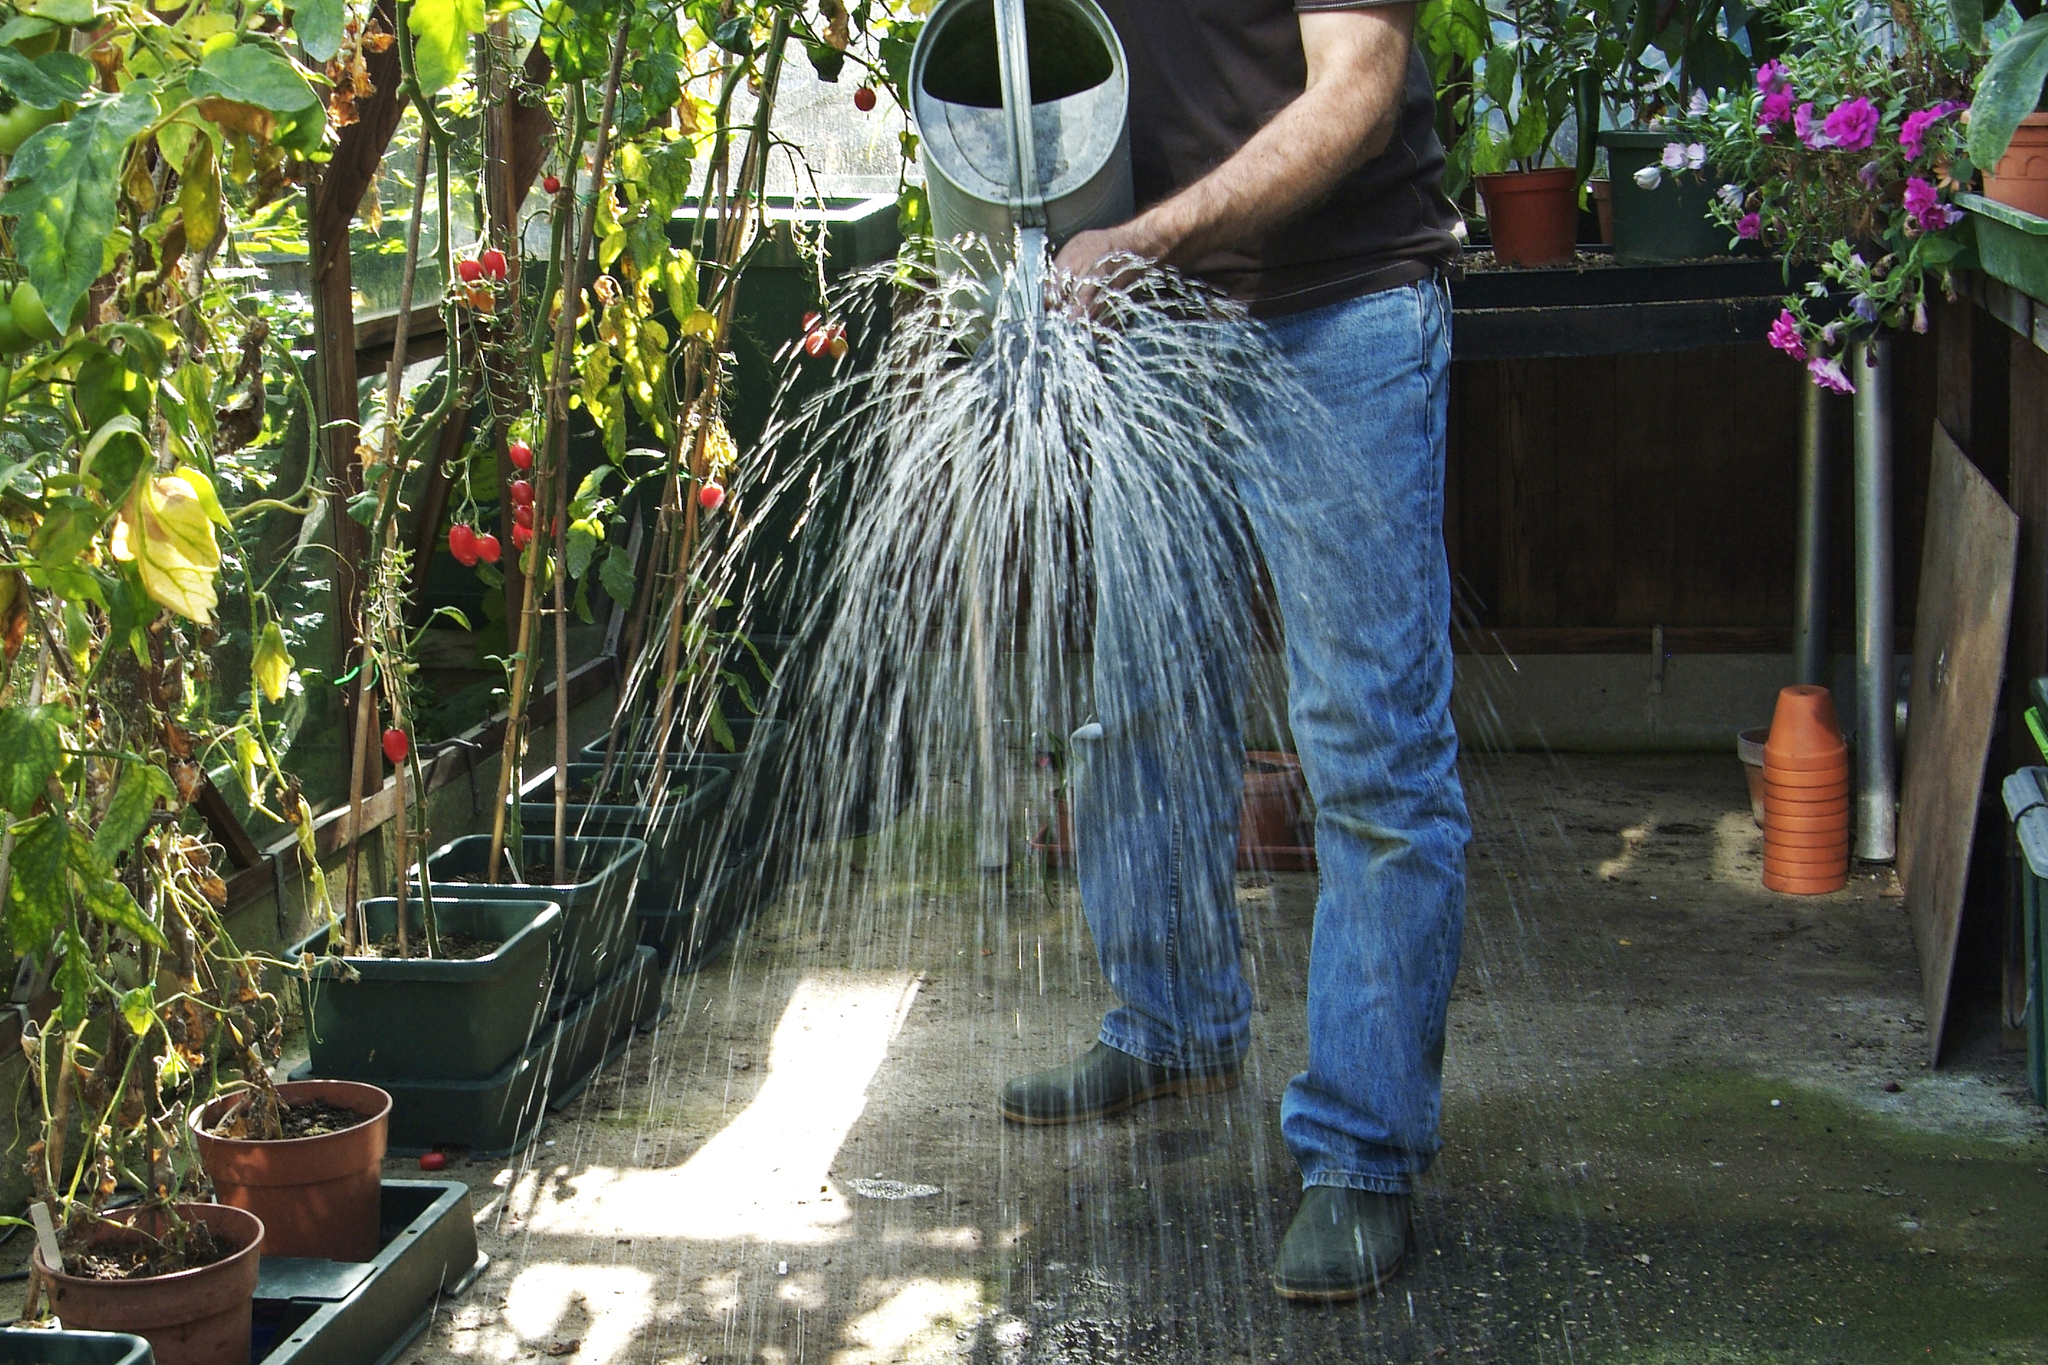 Damping down the greenhouse